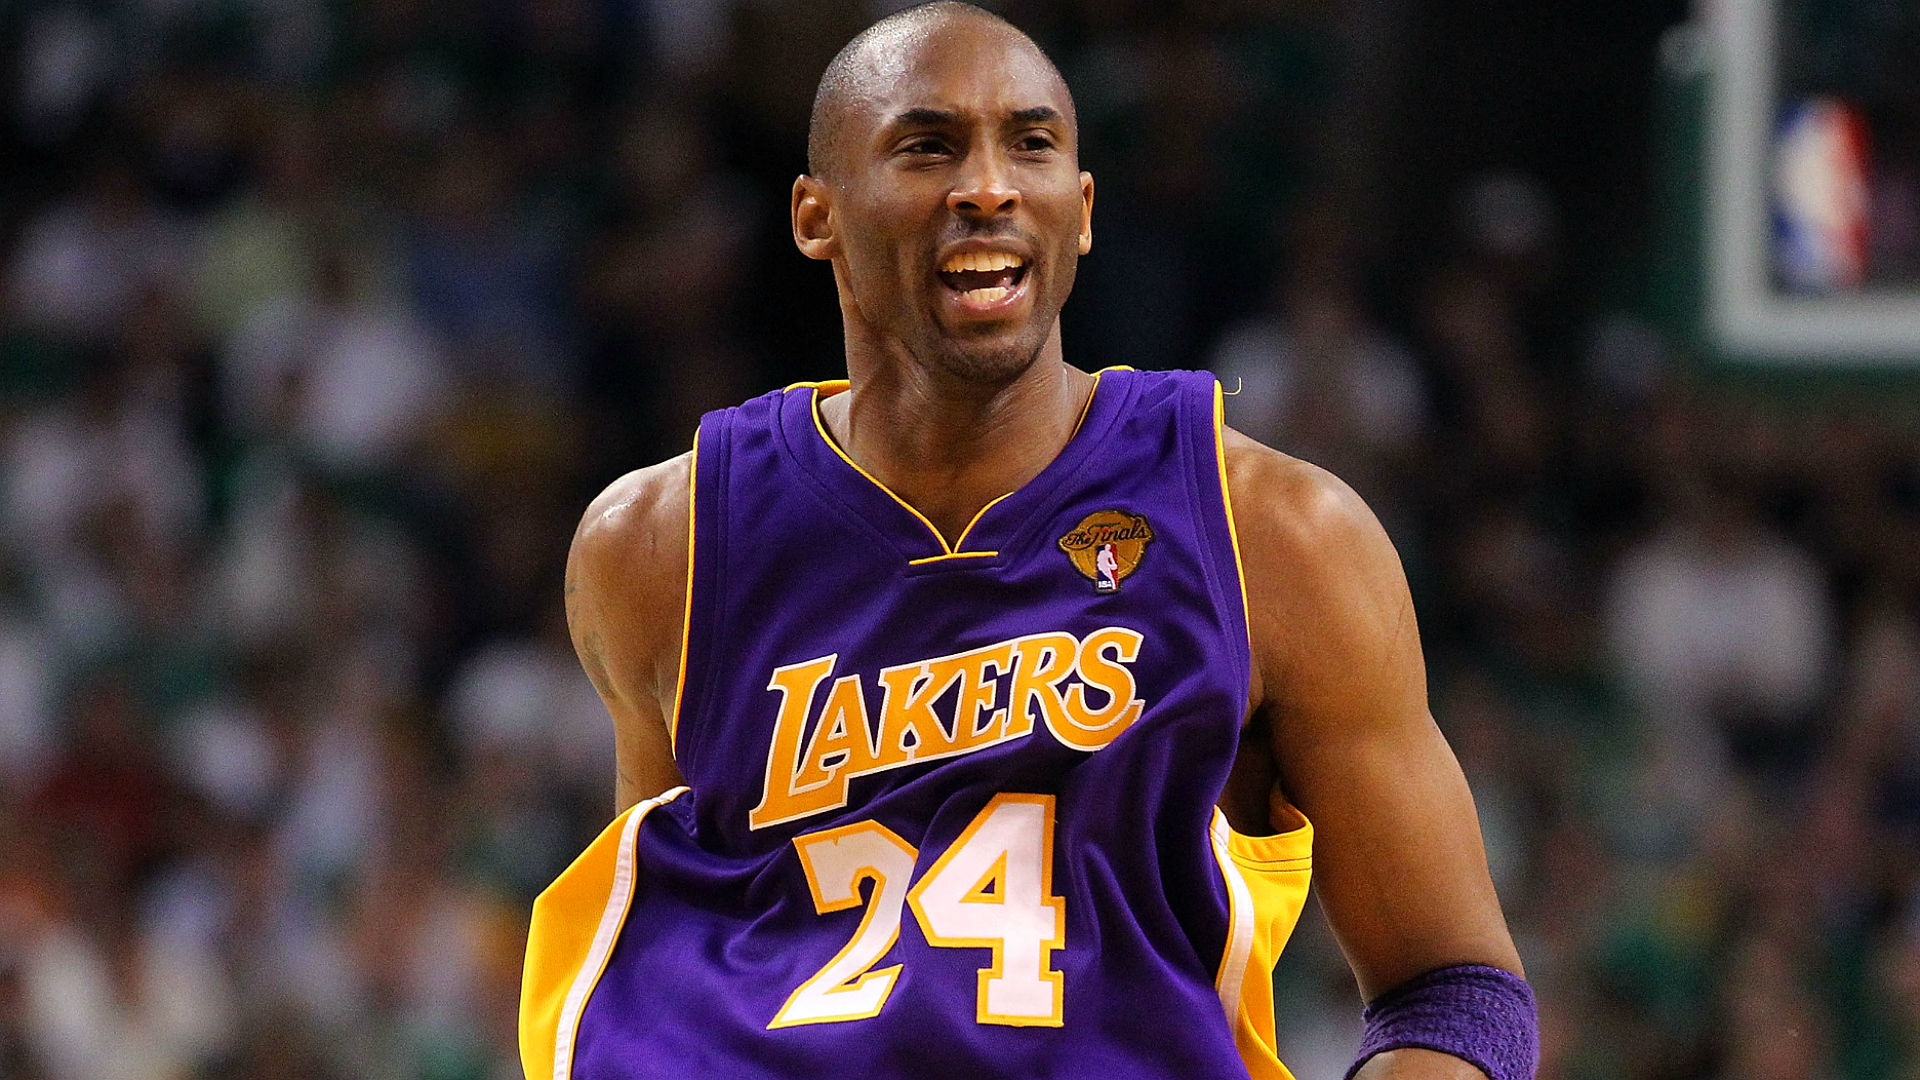 For a generation of athletes, Kobe Bryant defined the full sports ...